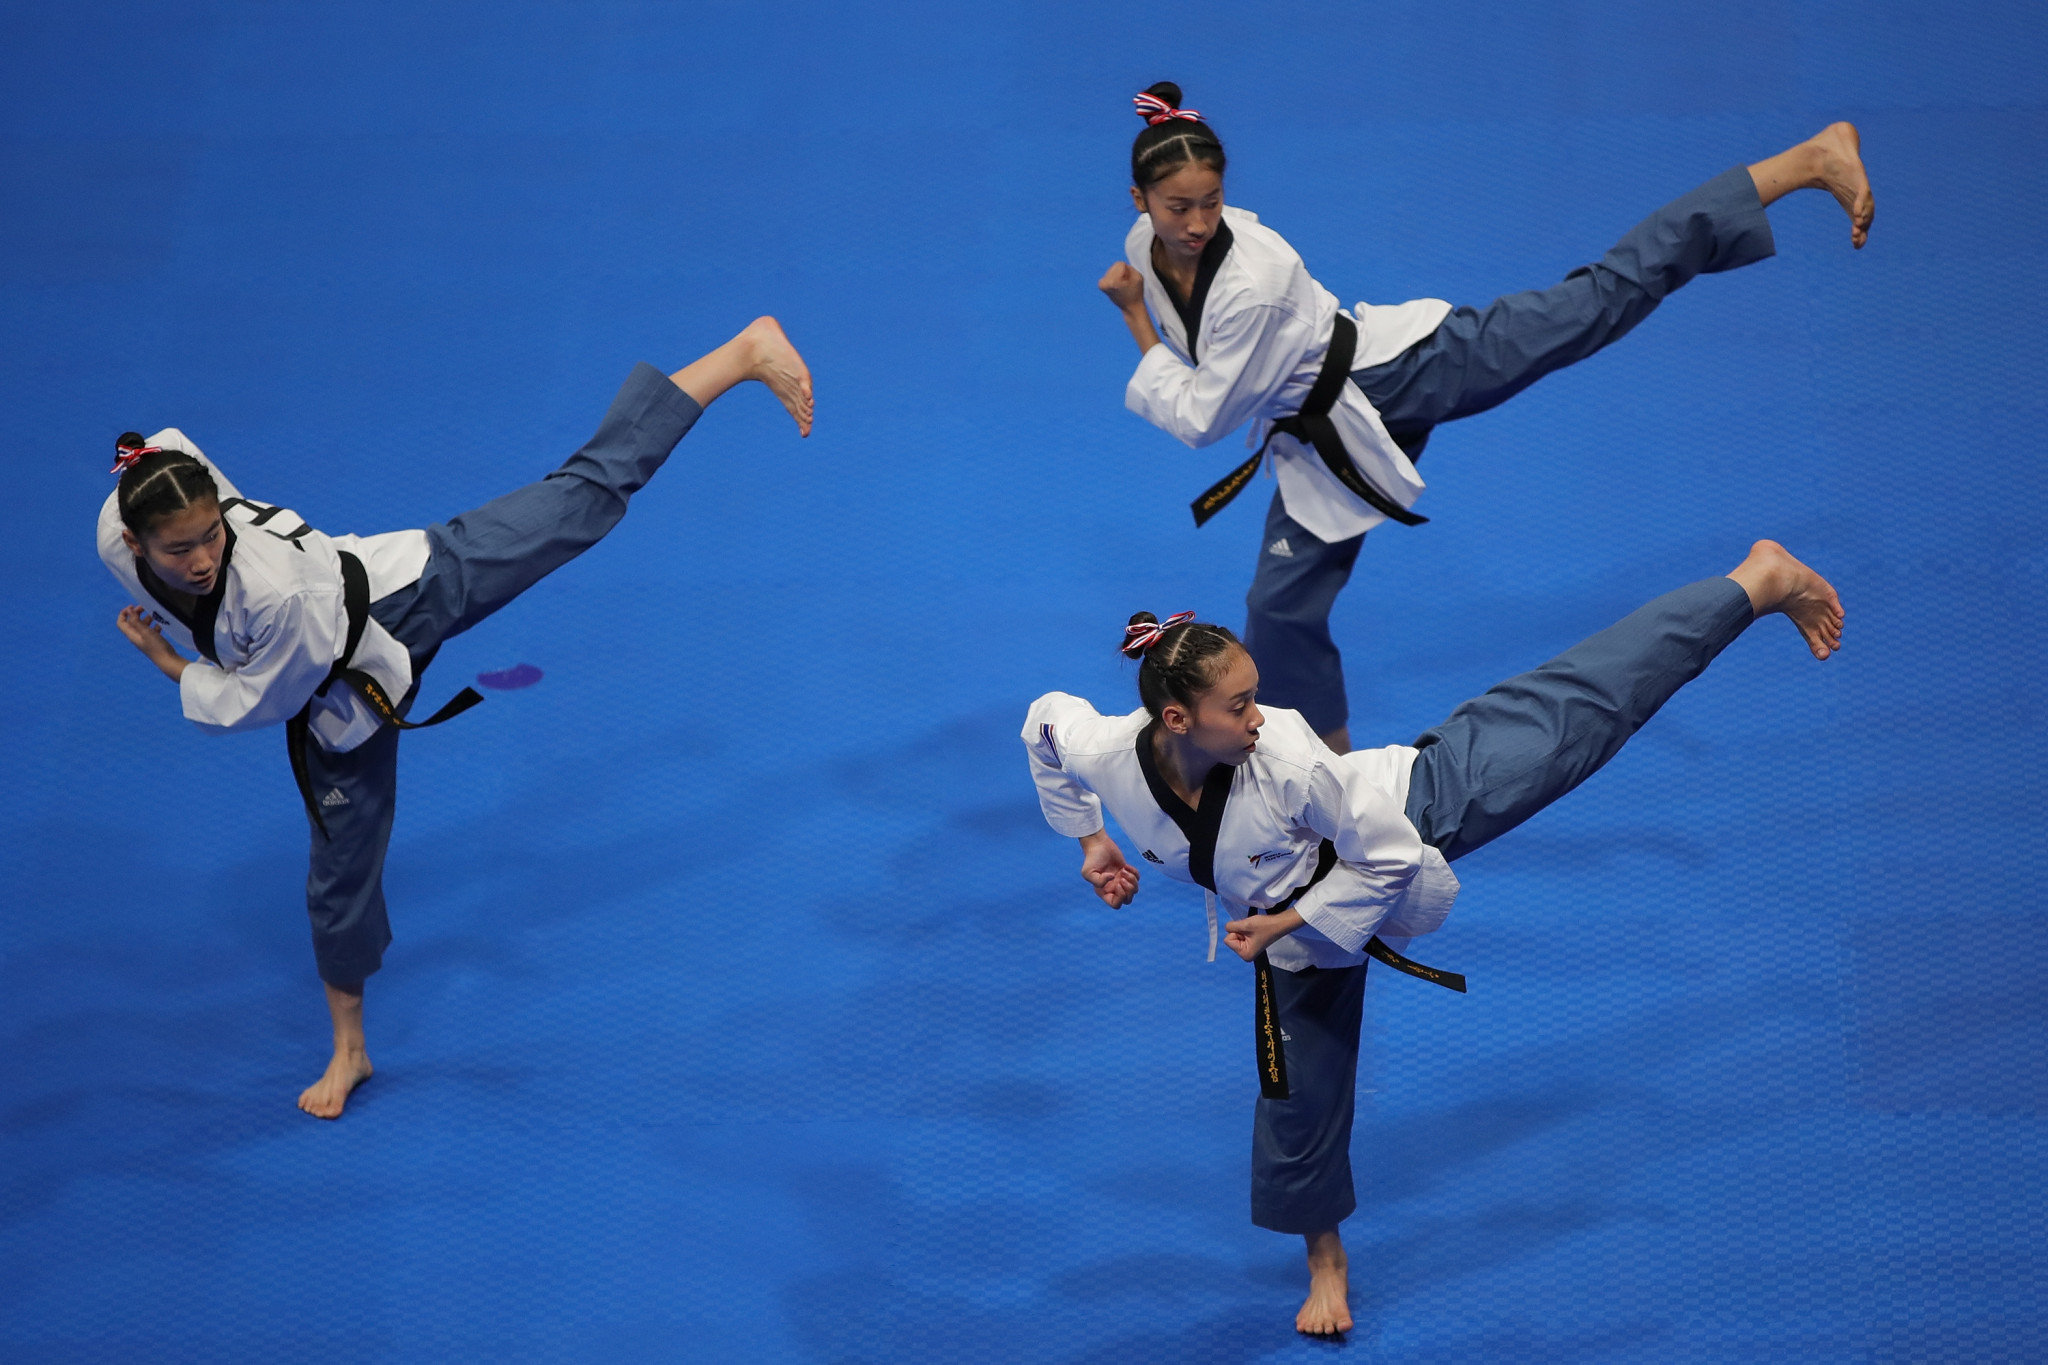 Uniforms at World Taekwondo Poomsae Championships to be made from recycled plastic bottles